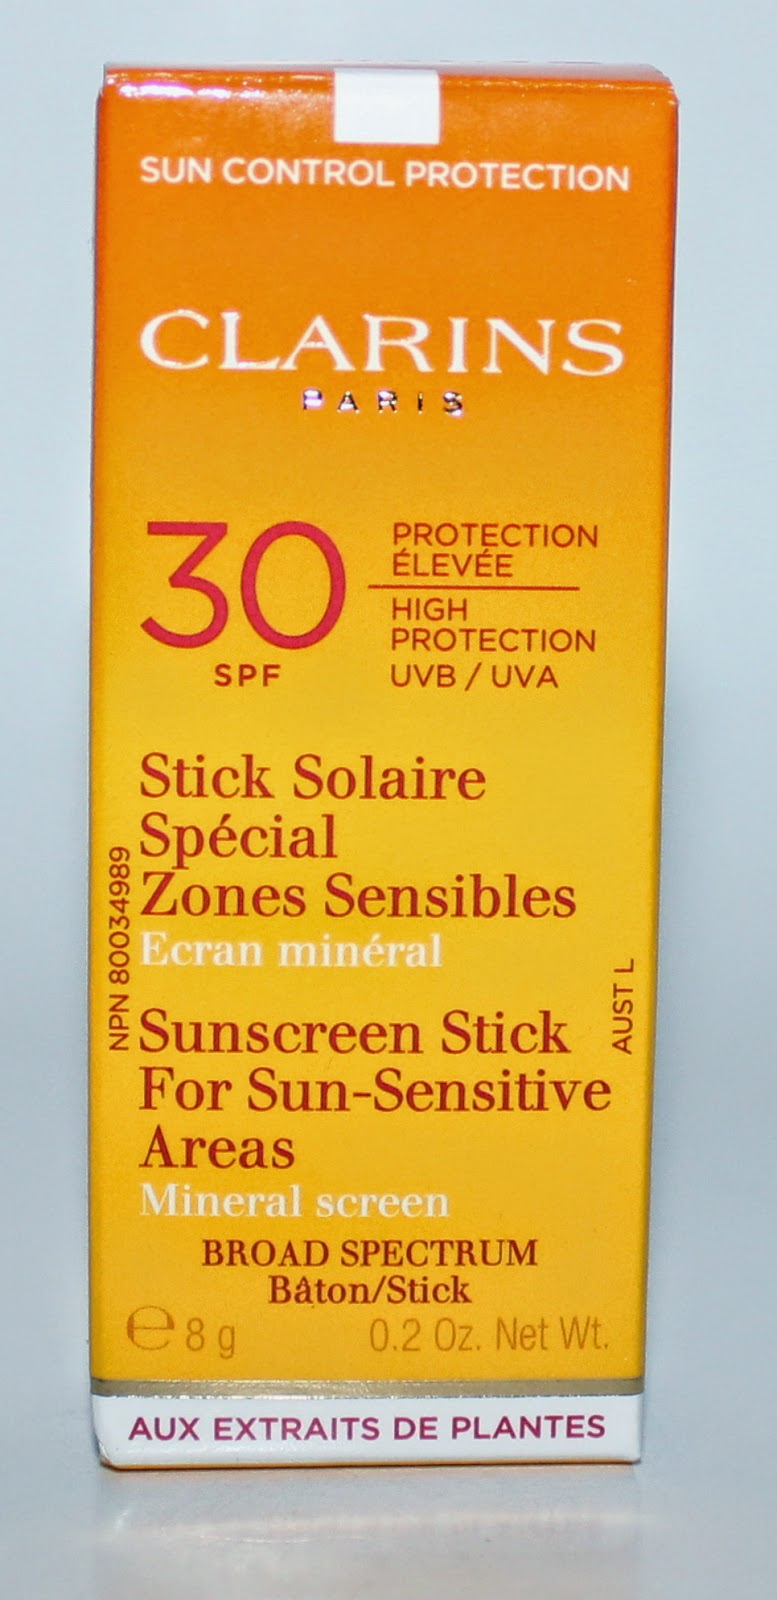 Clarins Sun Control Stick For Sun-Sensitive Areas UVA/UVB 30